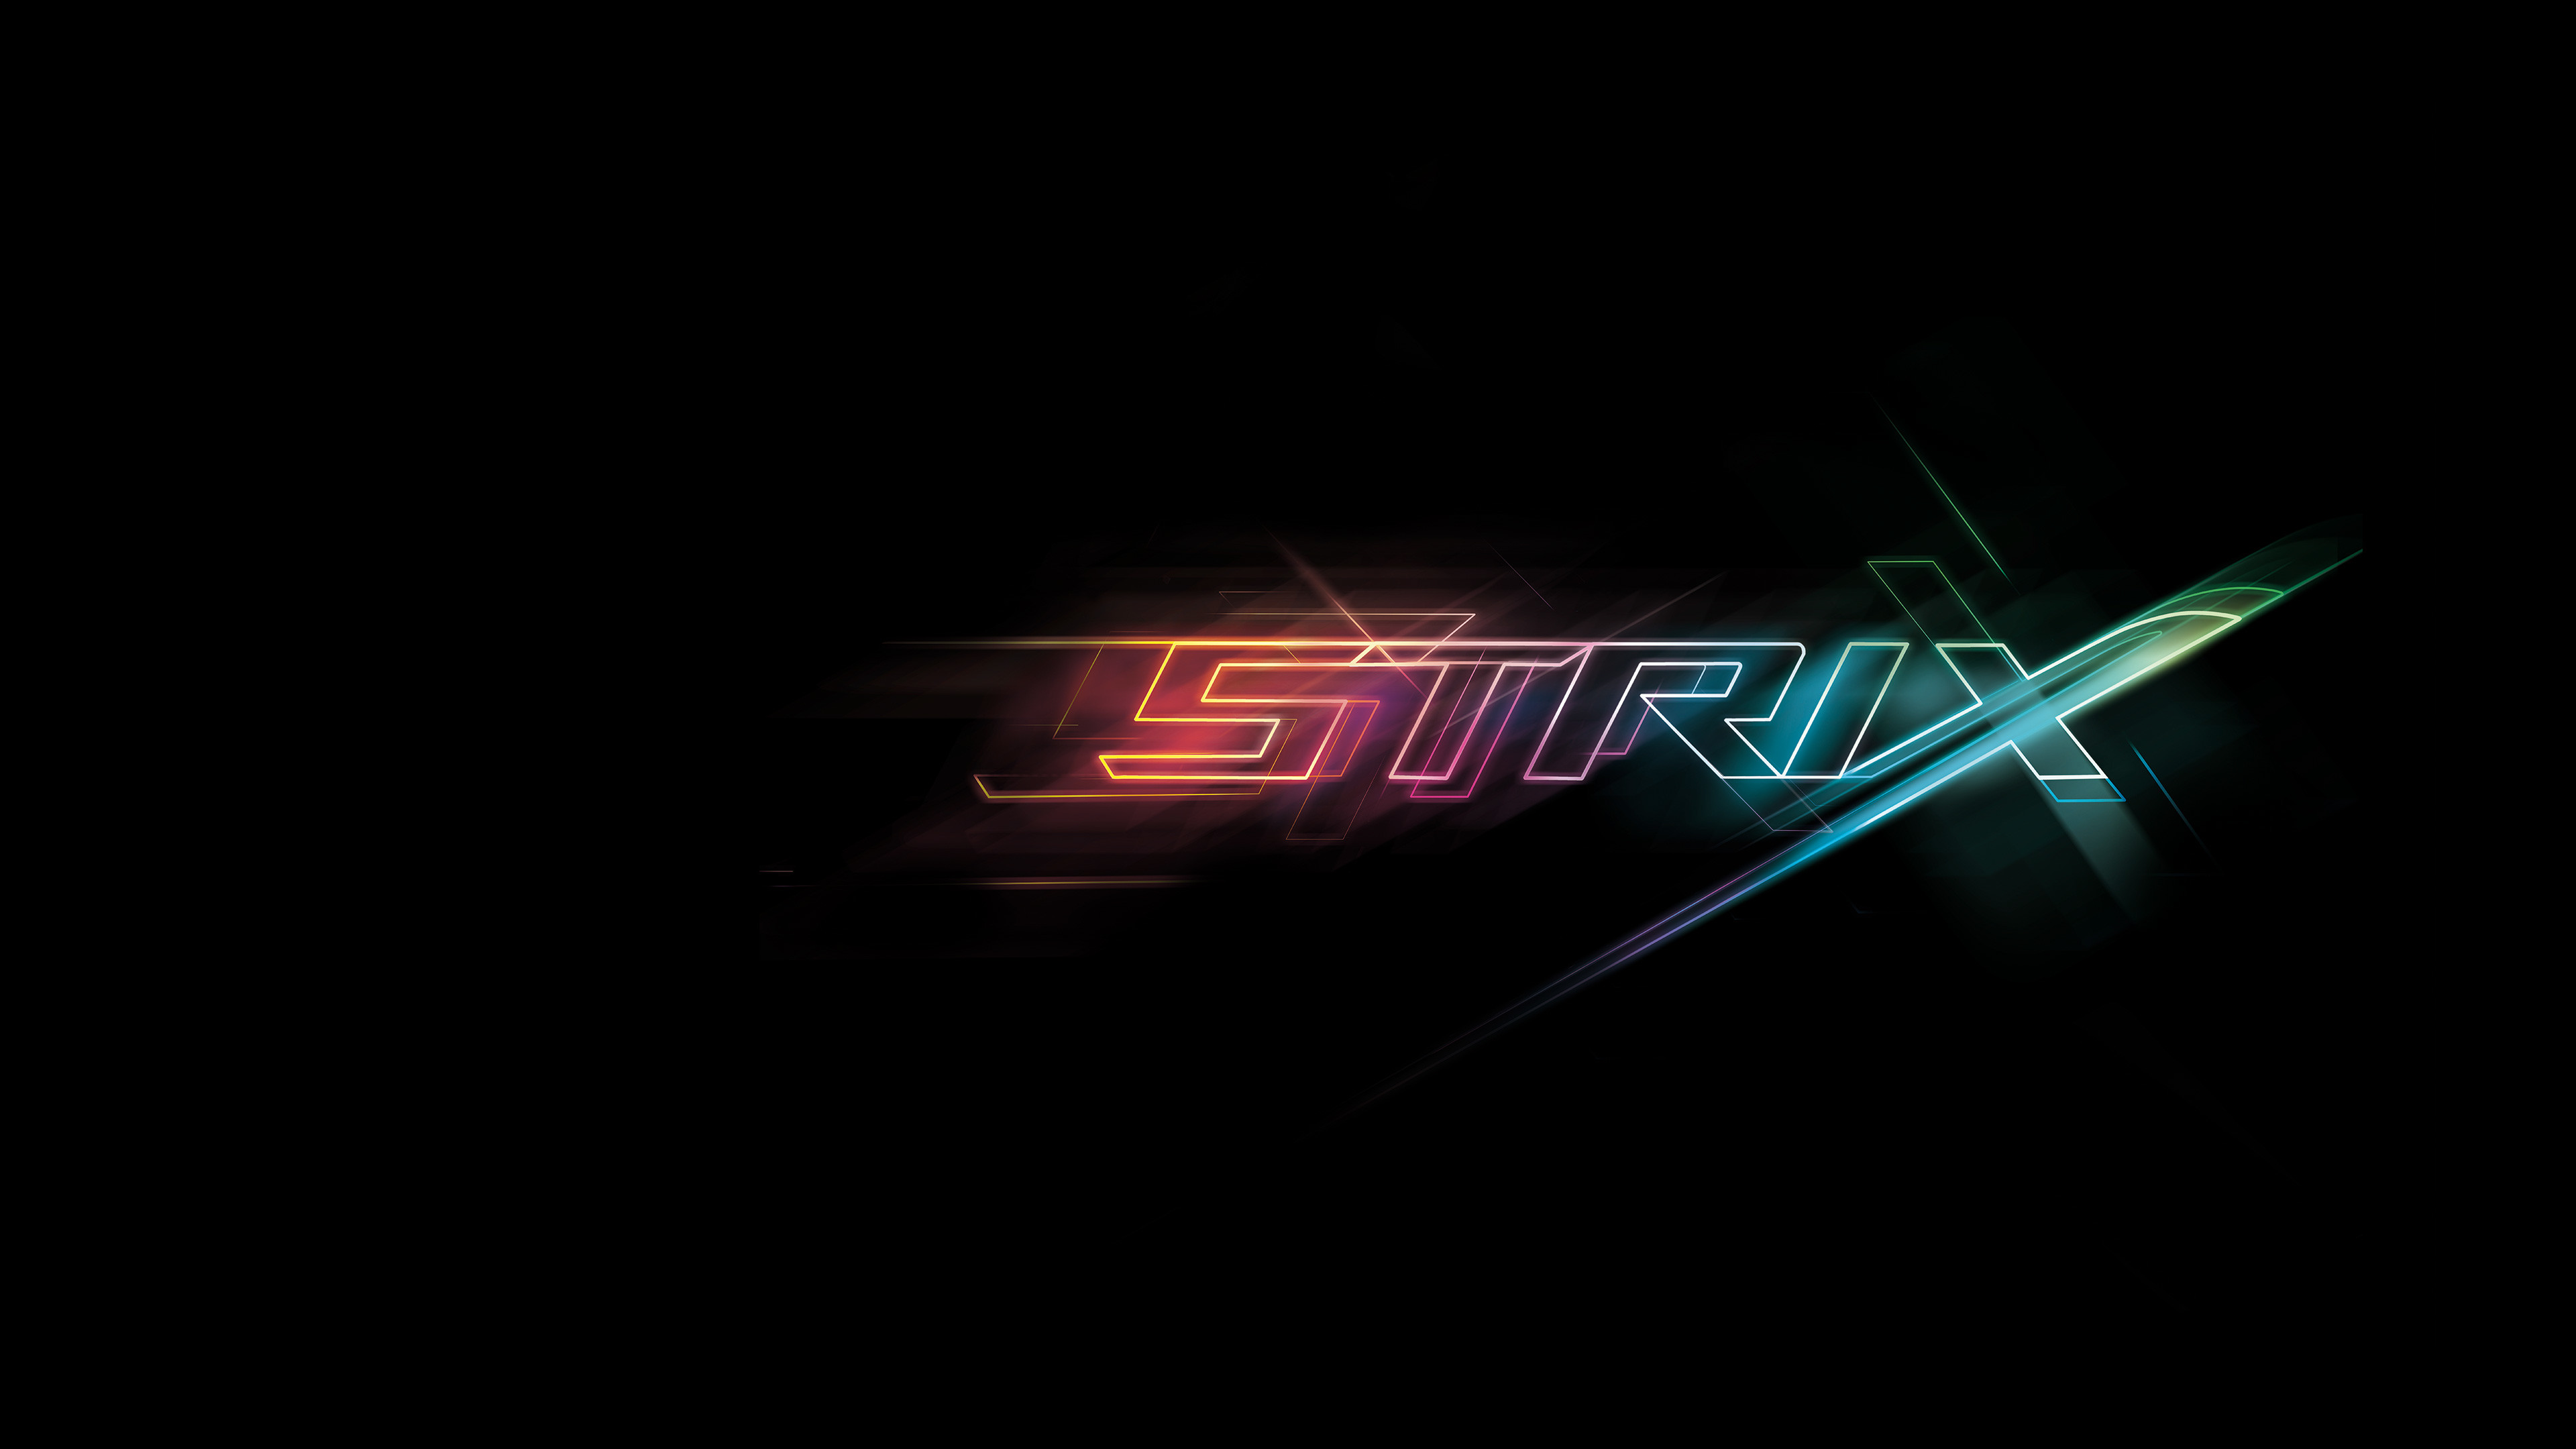 Asus Strix Wallpaper 80 Images